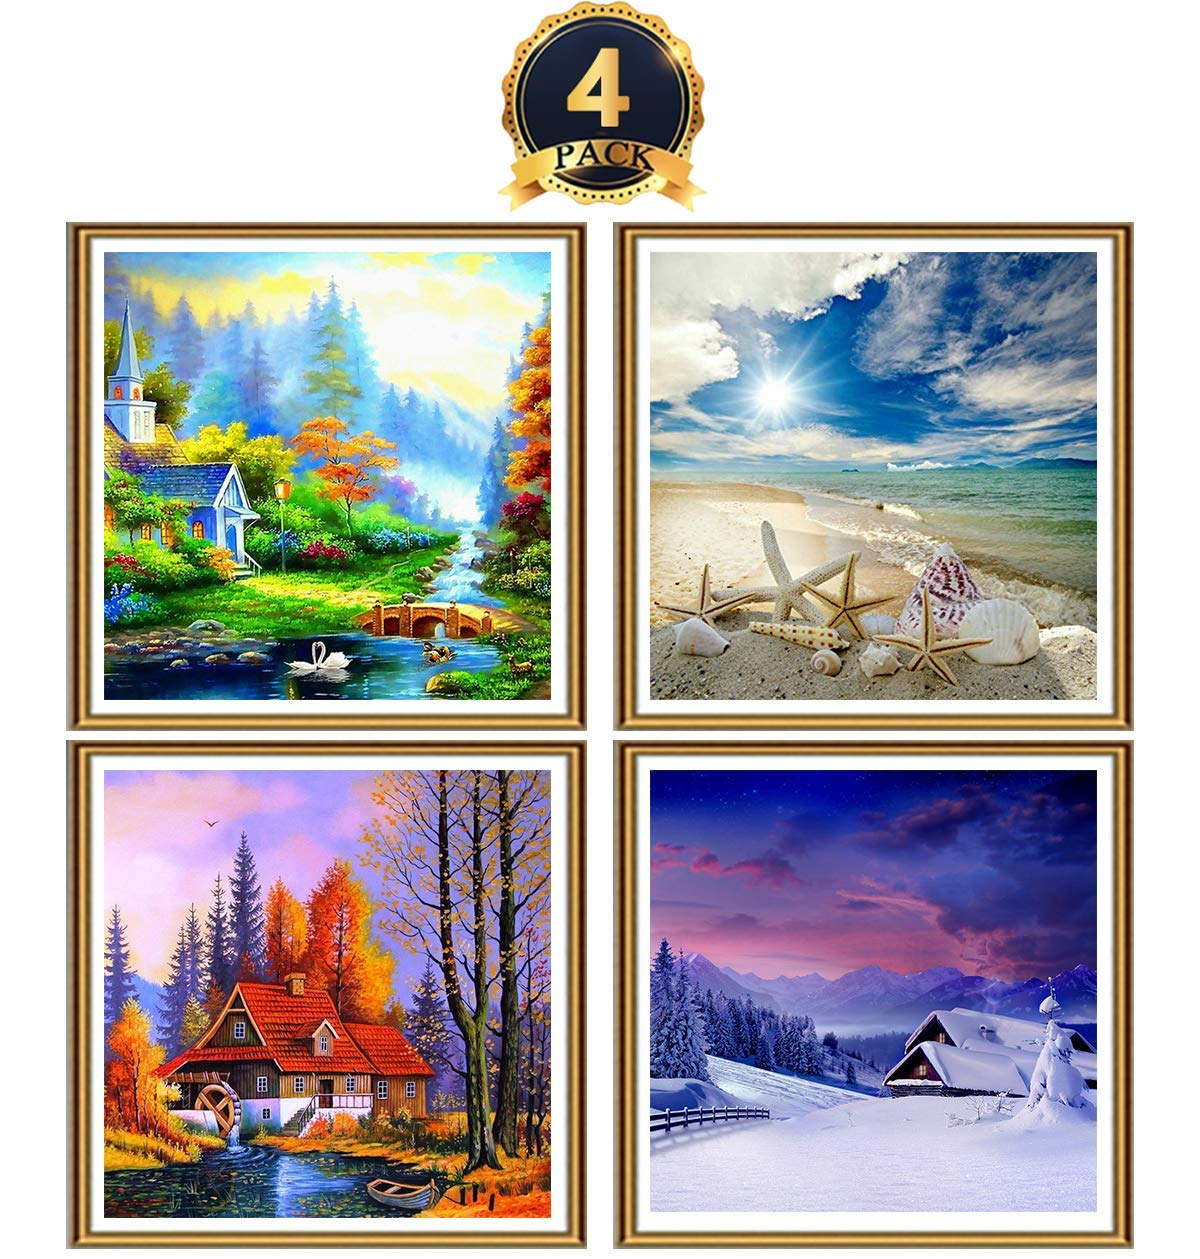 Ginfonr Spring Summer Autumn and Winter Landscape Paint with Diamonds Art Craft Decor M-Aimee 4 Pack 5D DIY Diamond Painting Four Season Scenery Kit Full Drill by Number Kits for Adults 12 x 12 inch